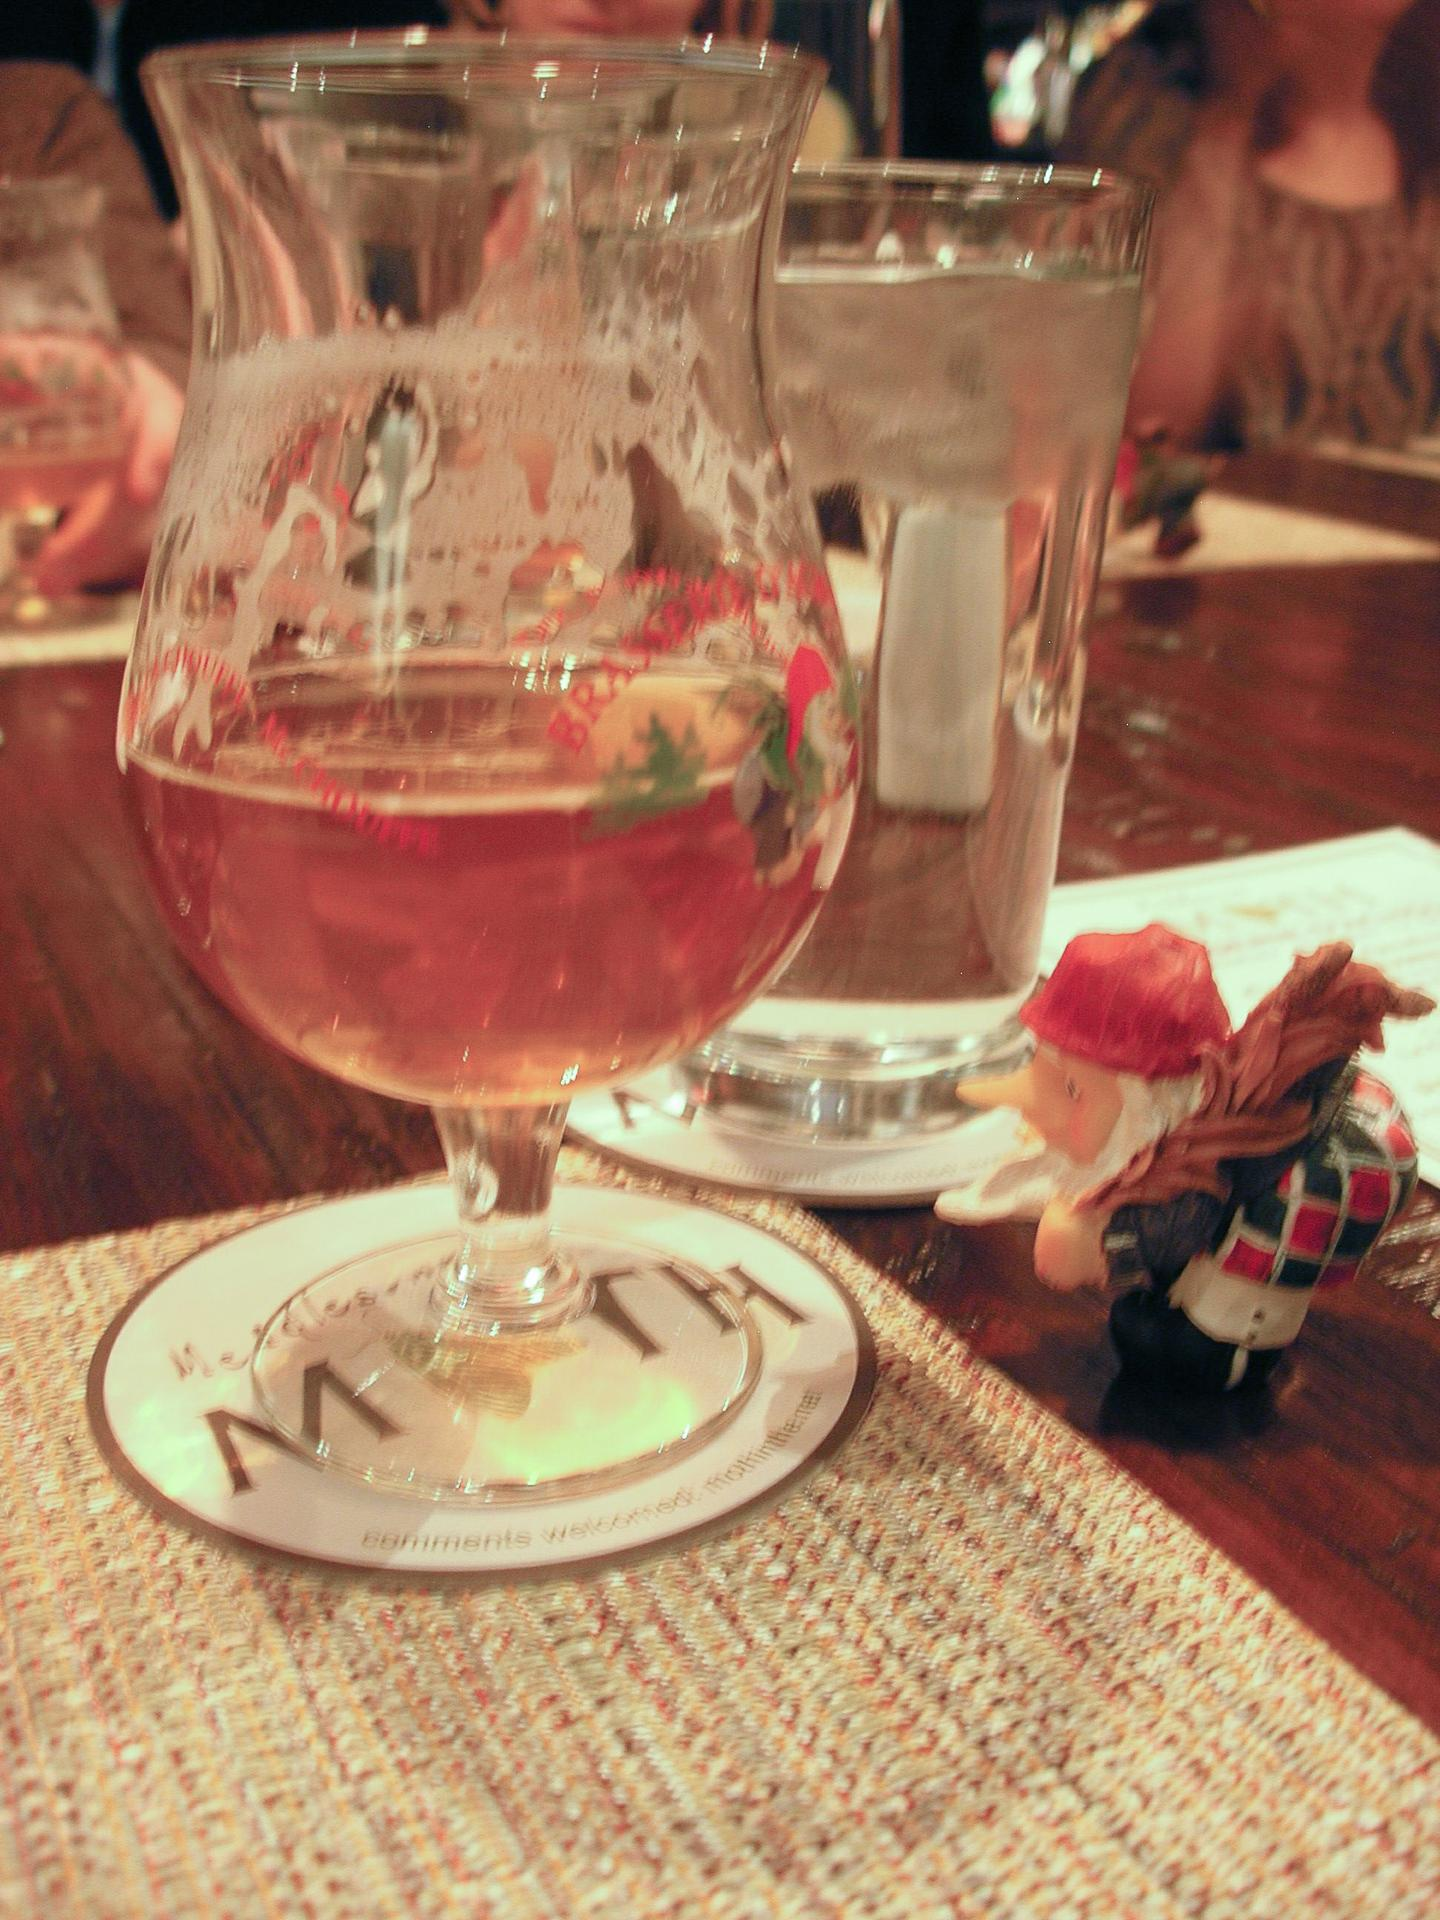 A tiny LaChouffe troll checks out a glass of Houblon Chouffe